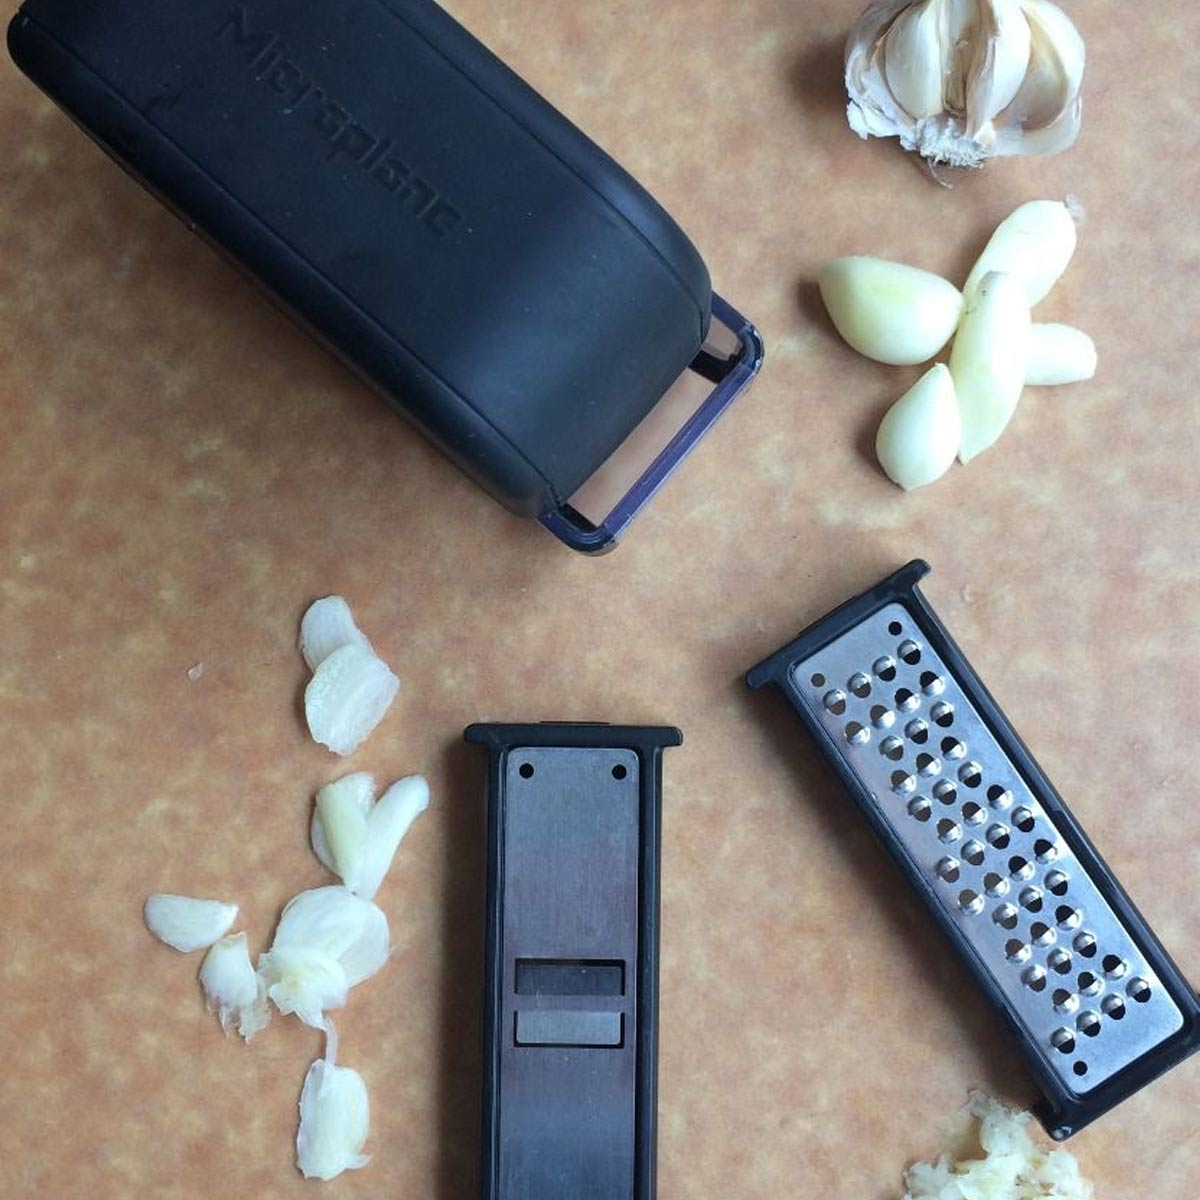 Black 48048 Microplane Specialty Series Garlic Mince /& Slice Set